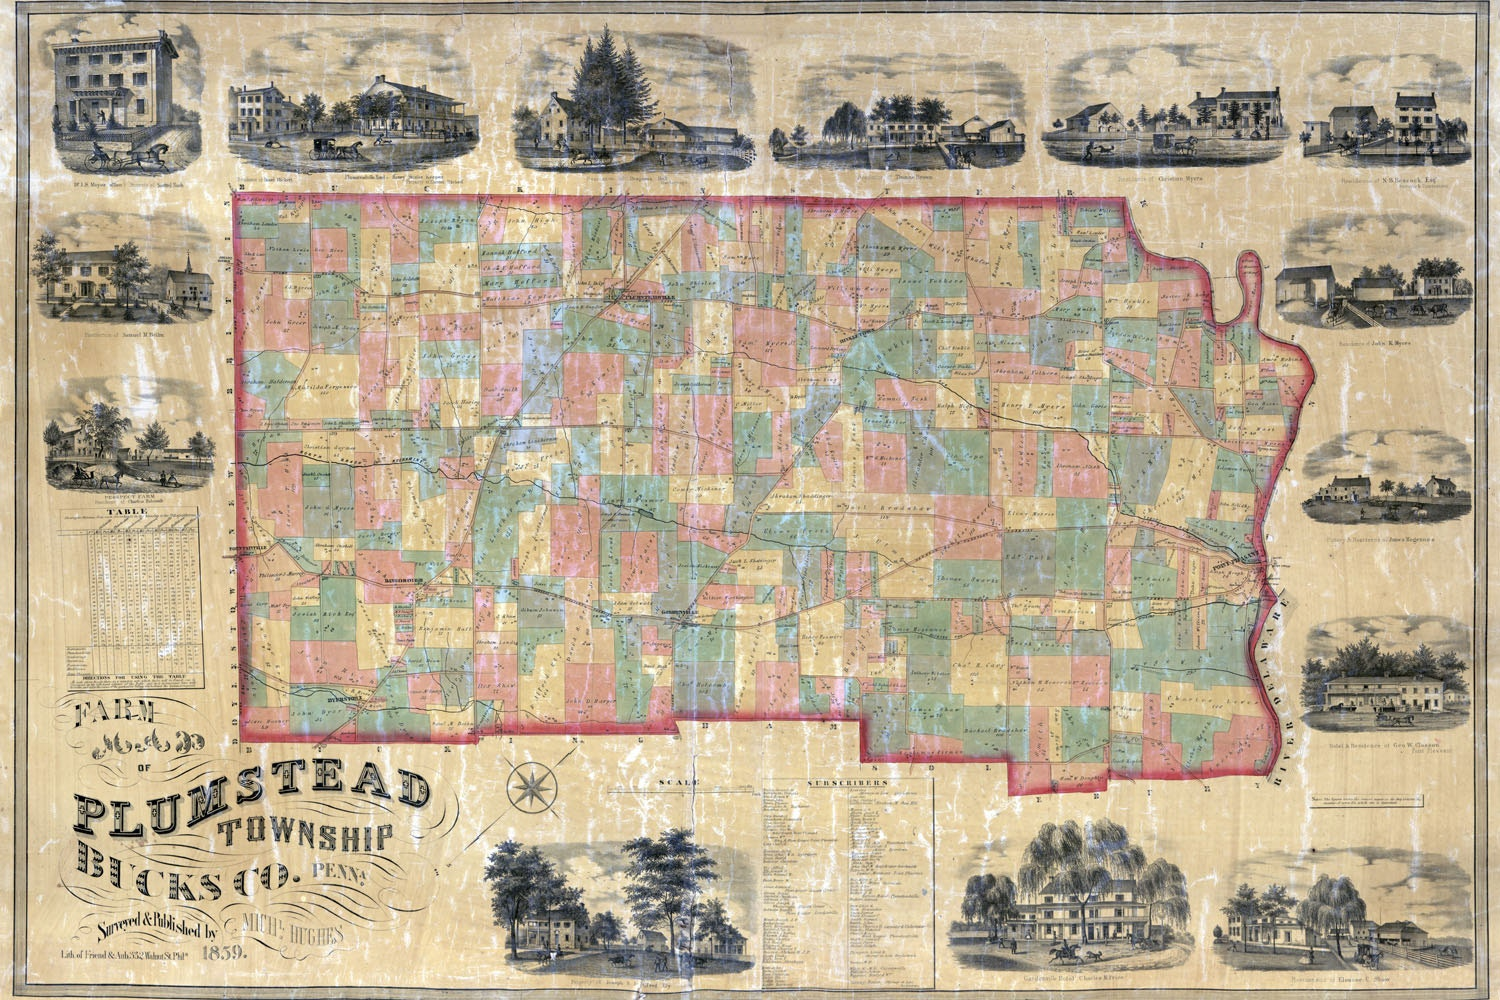 1859 farm line map of plumstead township bucks county pa for Craft shows in bucks county pa